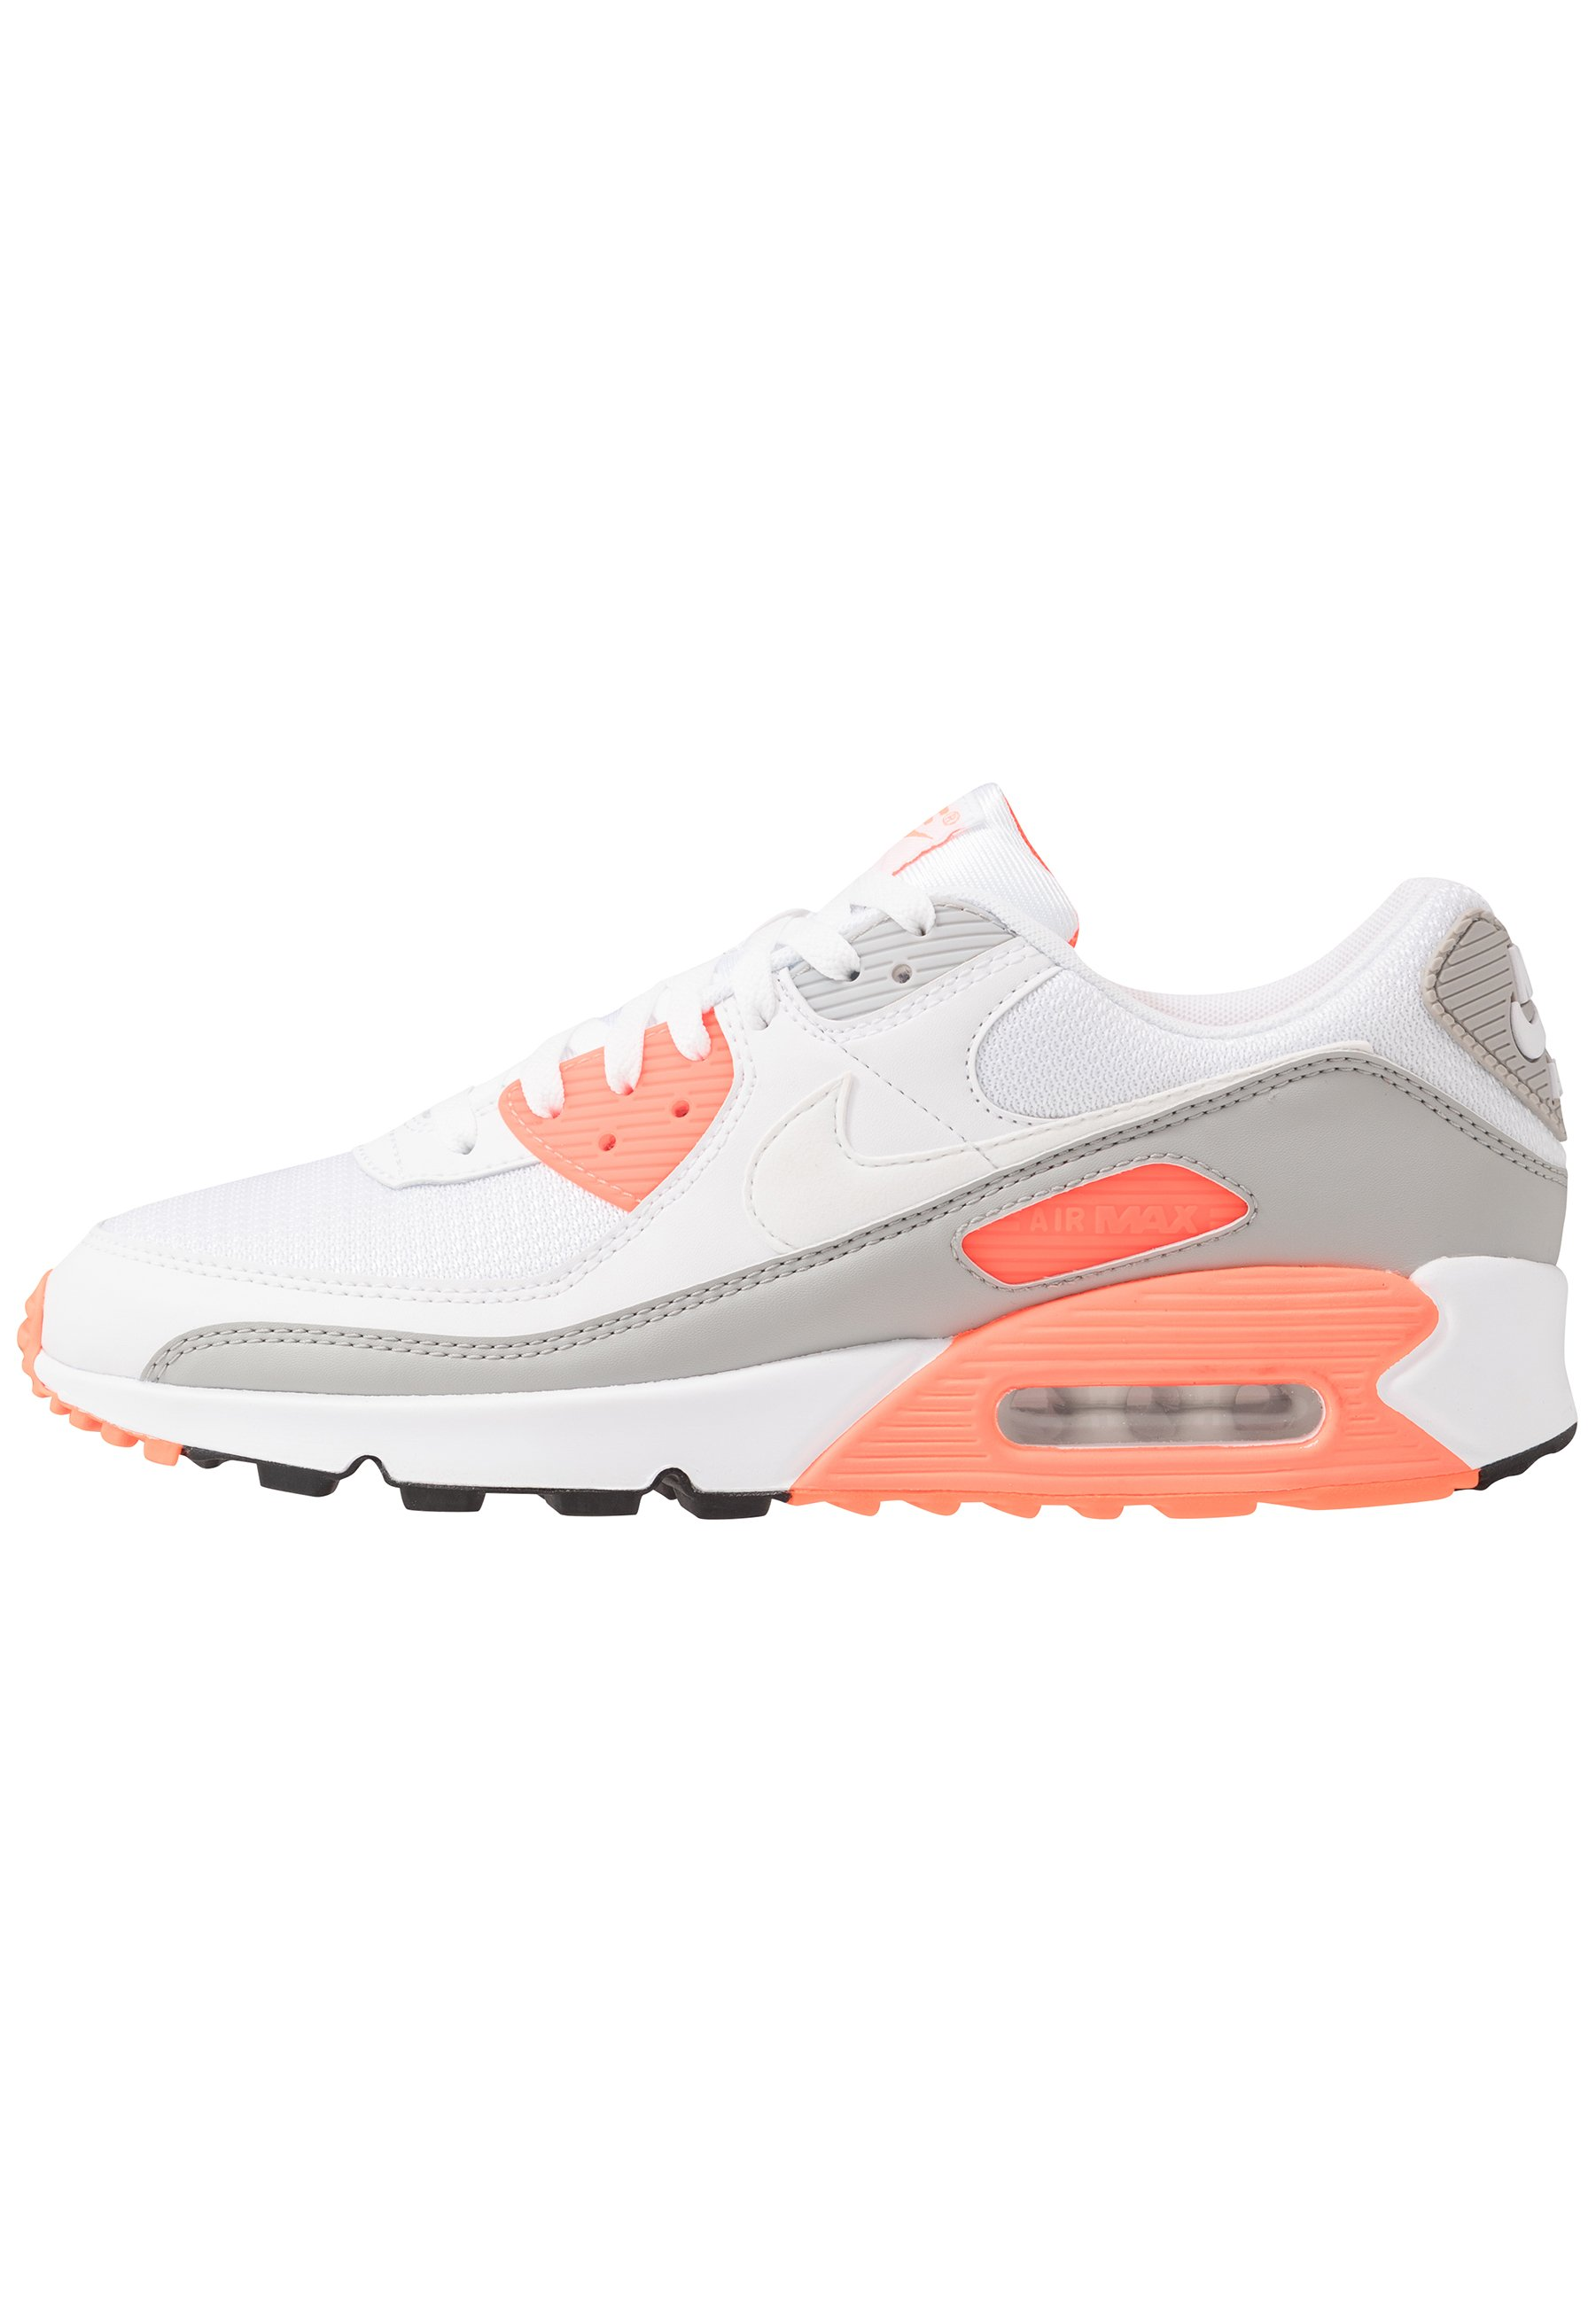 AIR MAX 90 Baskets basses whitehyper orangelight smoke grey